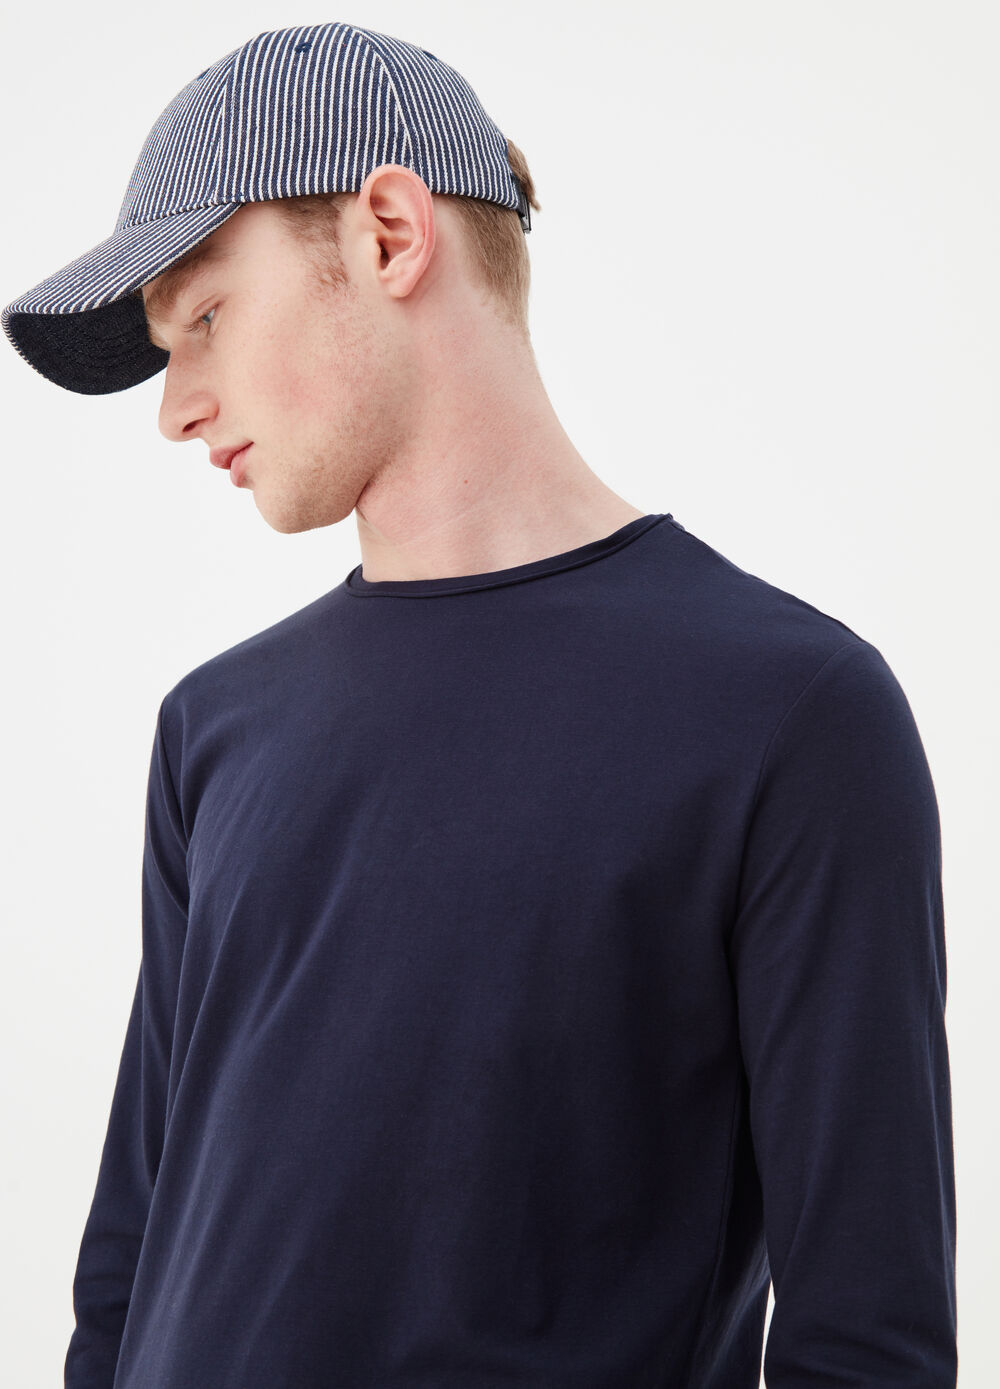 Long-sleeved stretch T-shirt